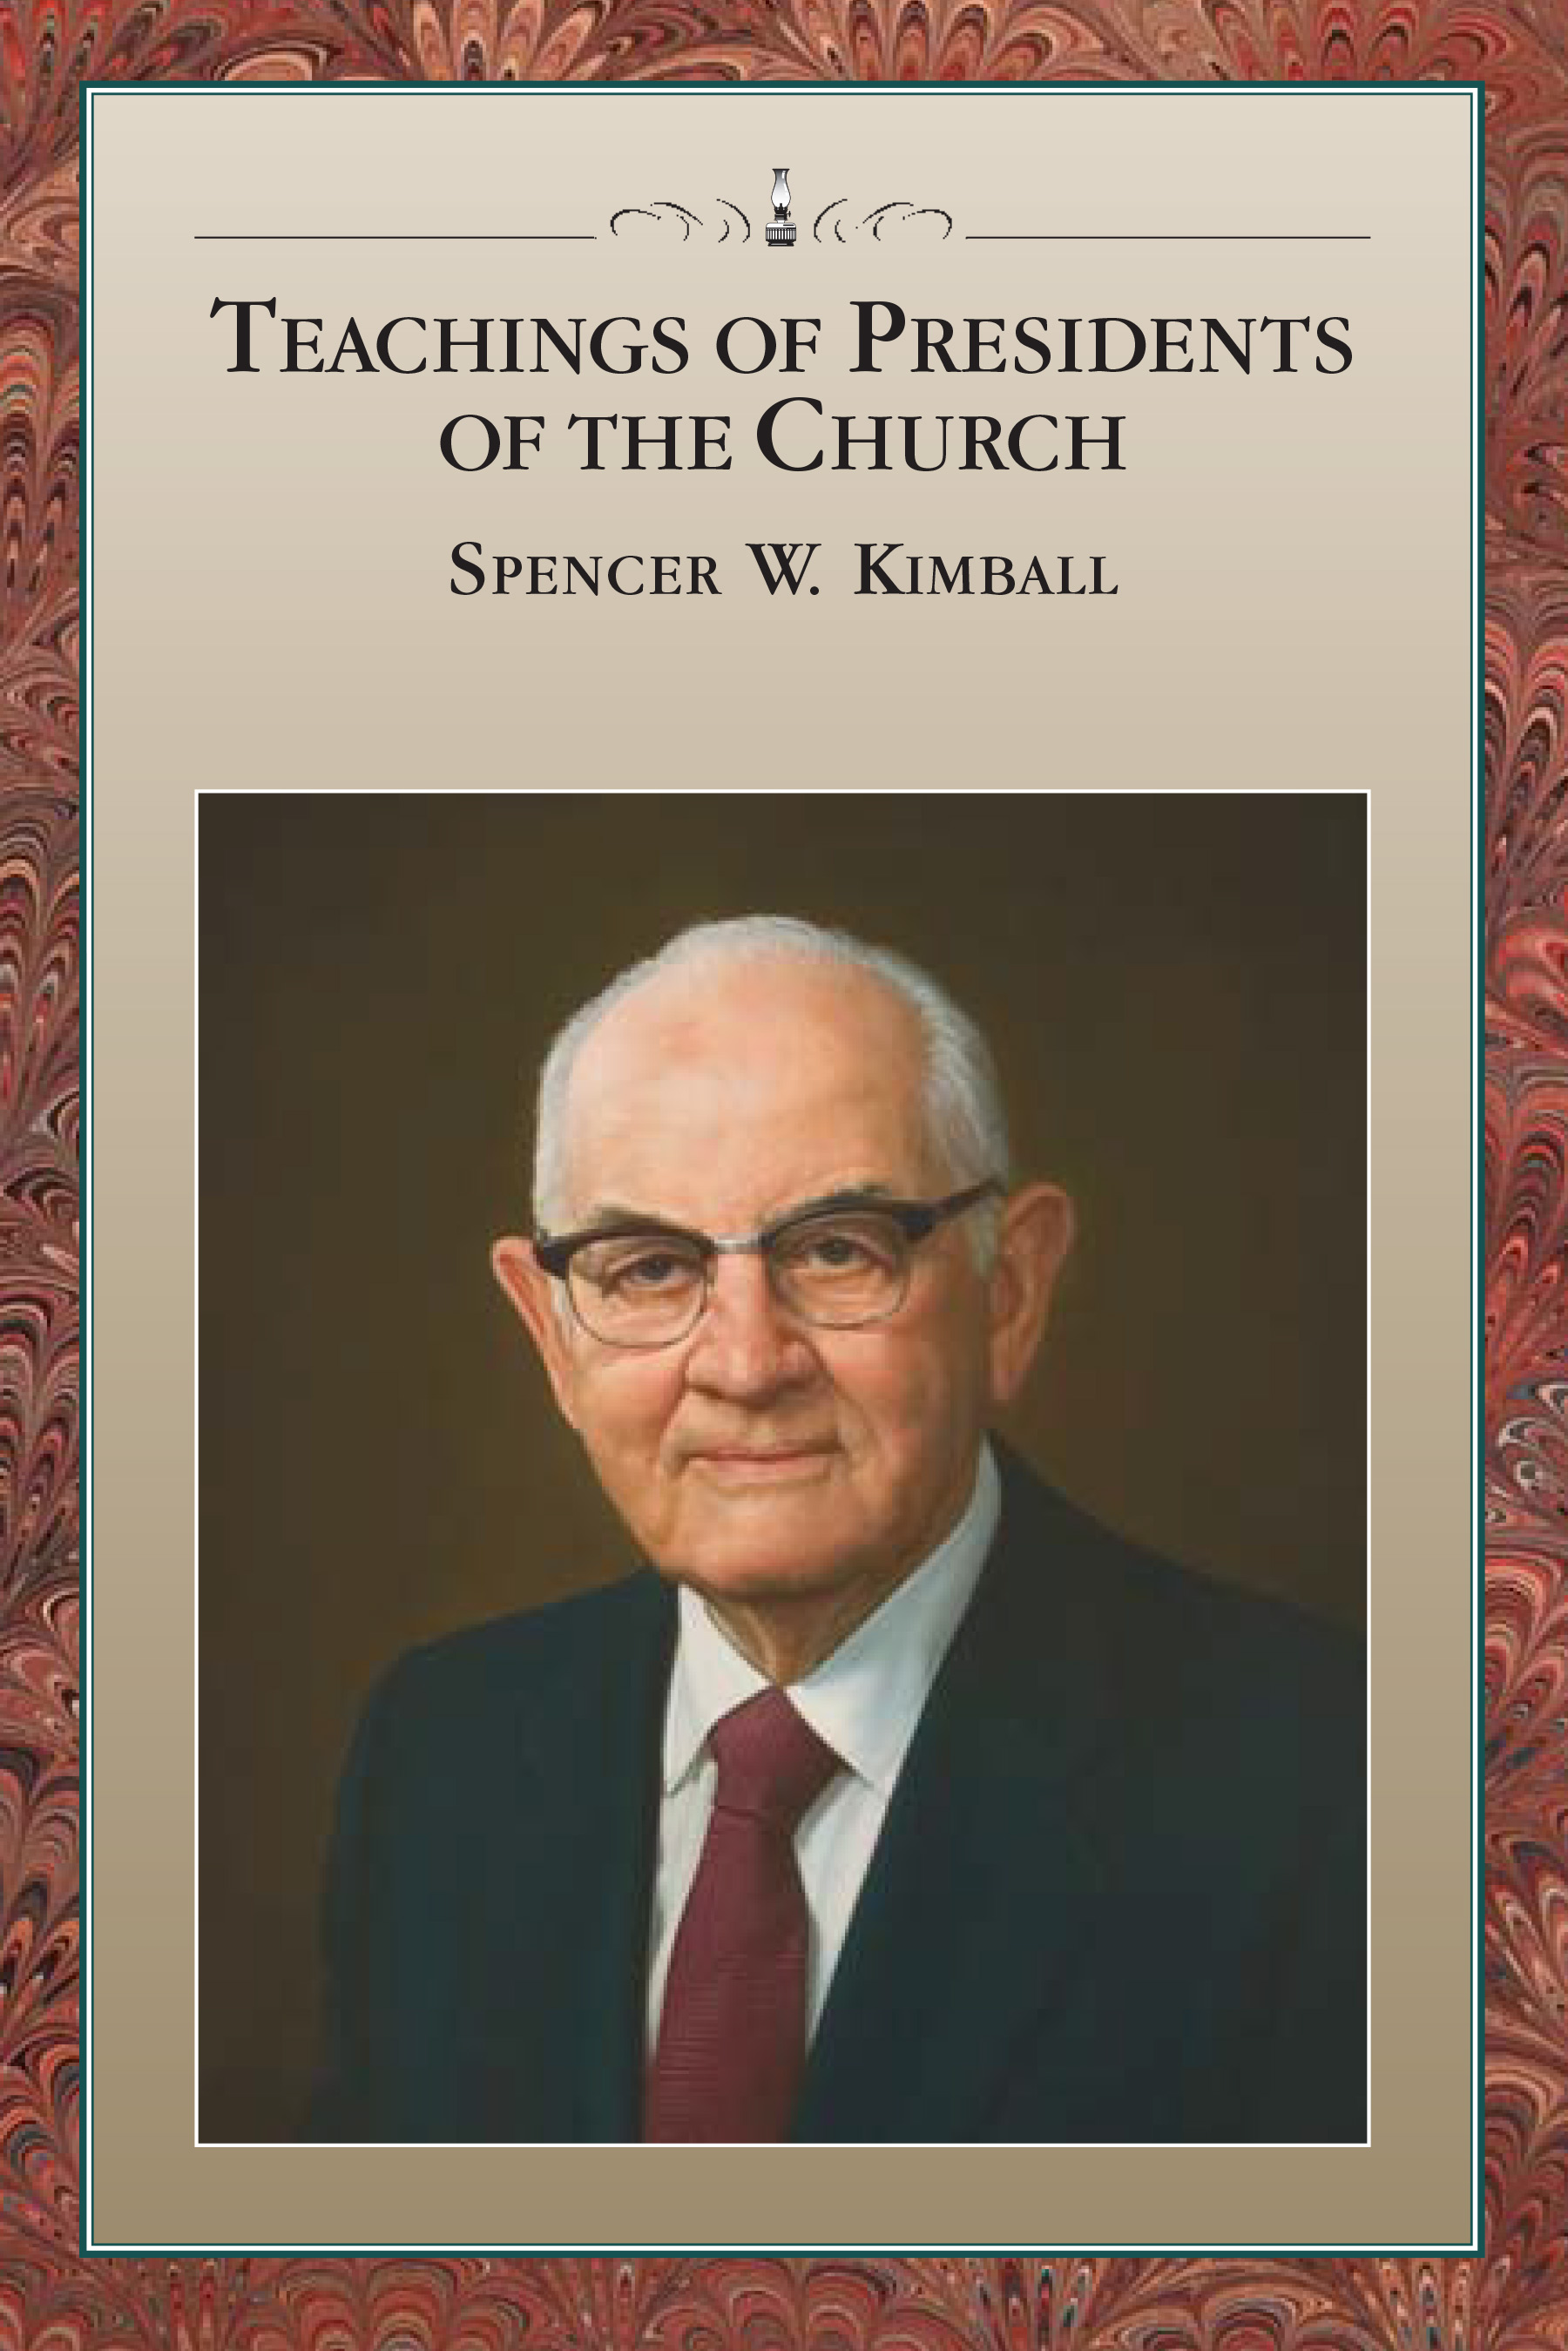 Teaching of Presidents of the Church: Spencer W. Kimball